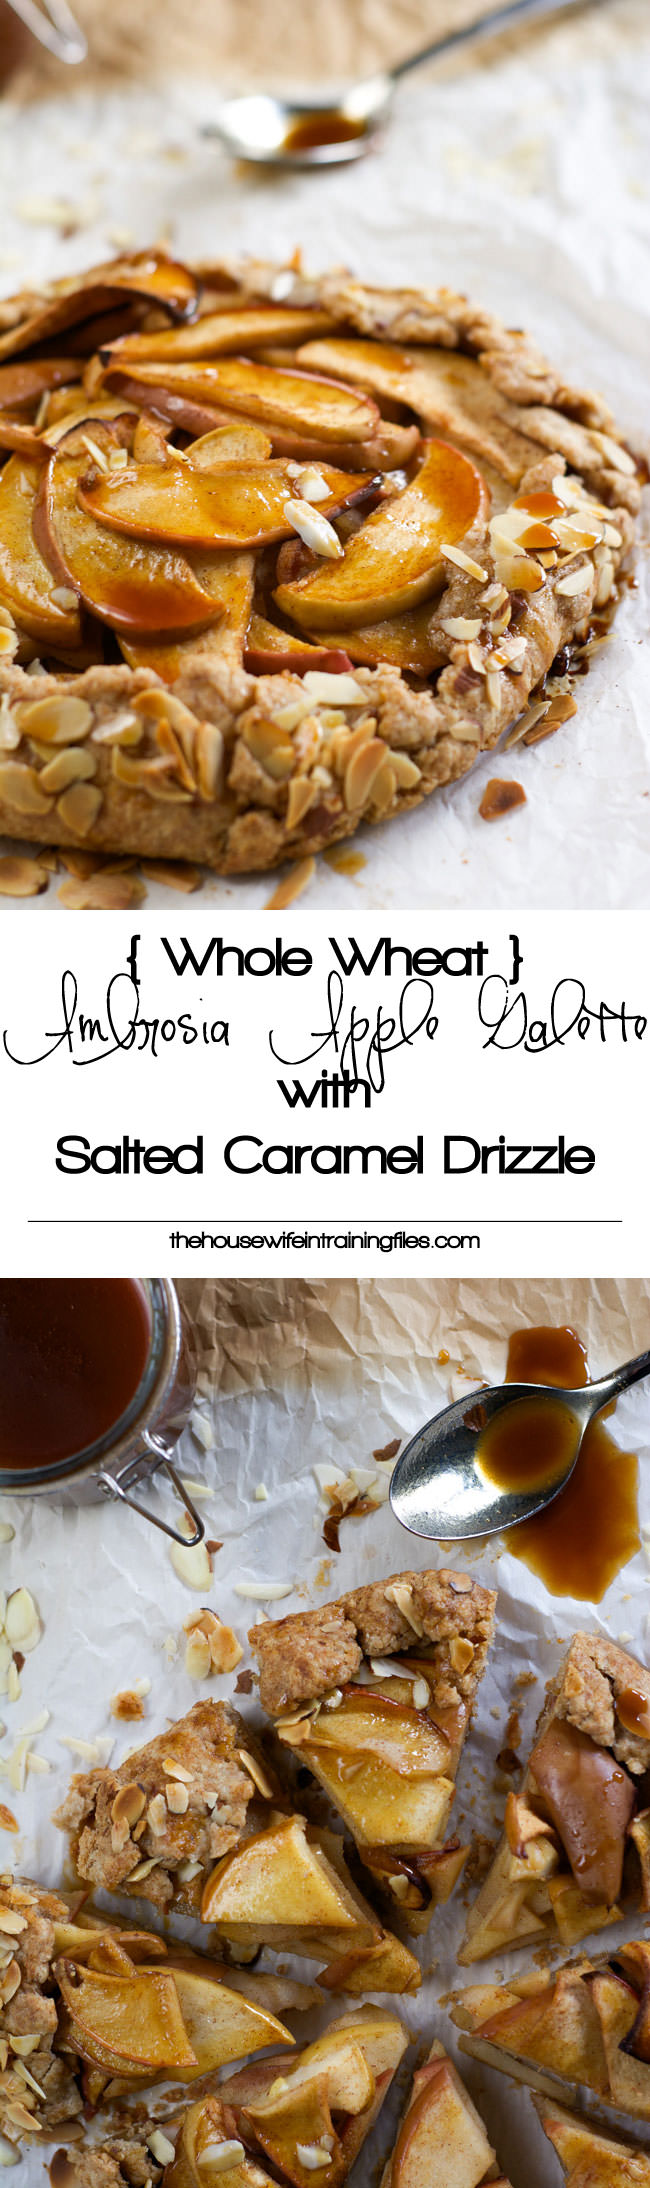 ... -Wheat-Ambrosia-Apple-Galette-with-Salted-Caramel-Drizzle-Long-Image